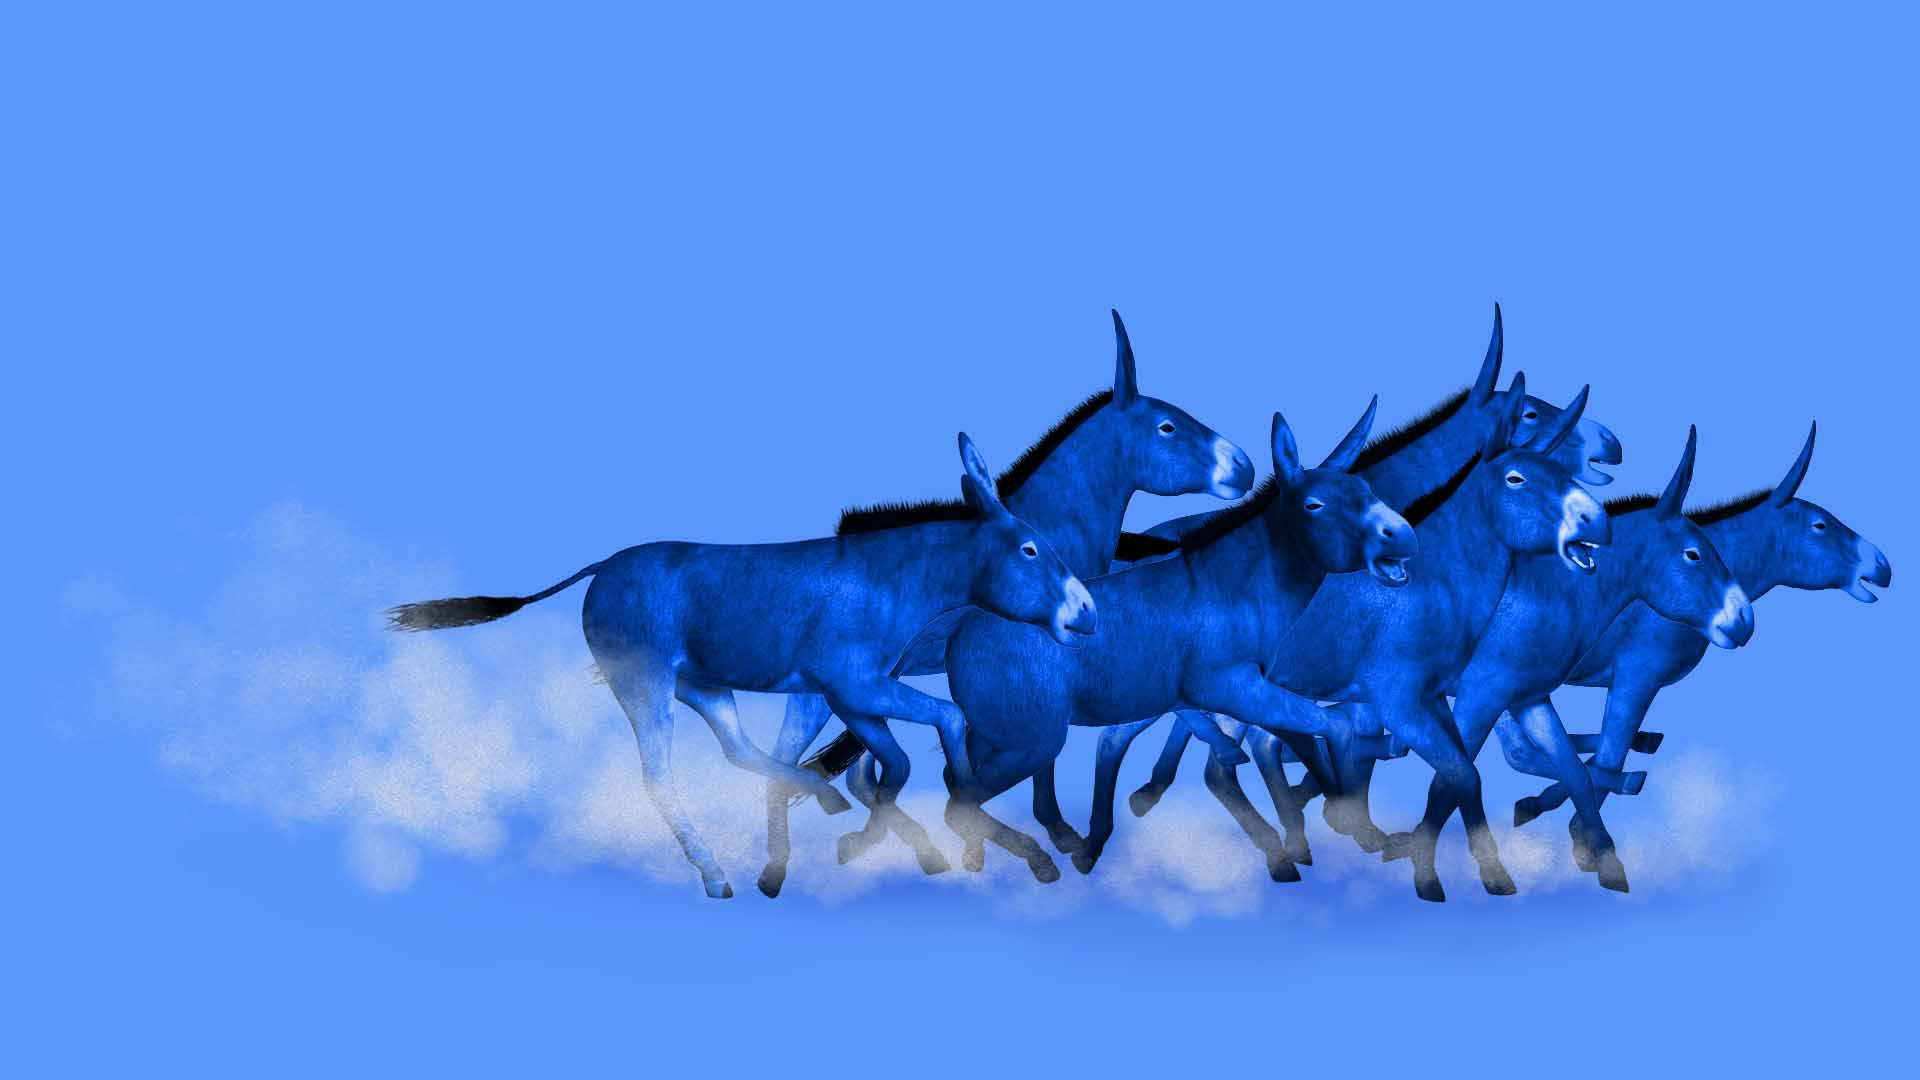 Illustration of a pack of donkeys at a race